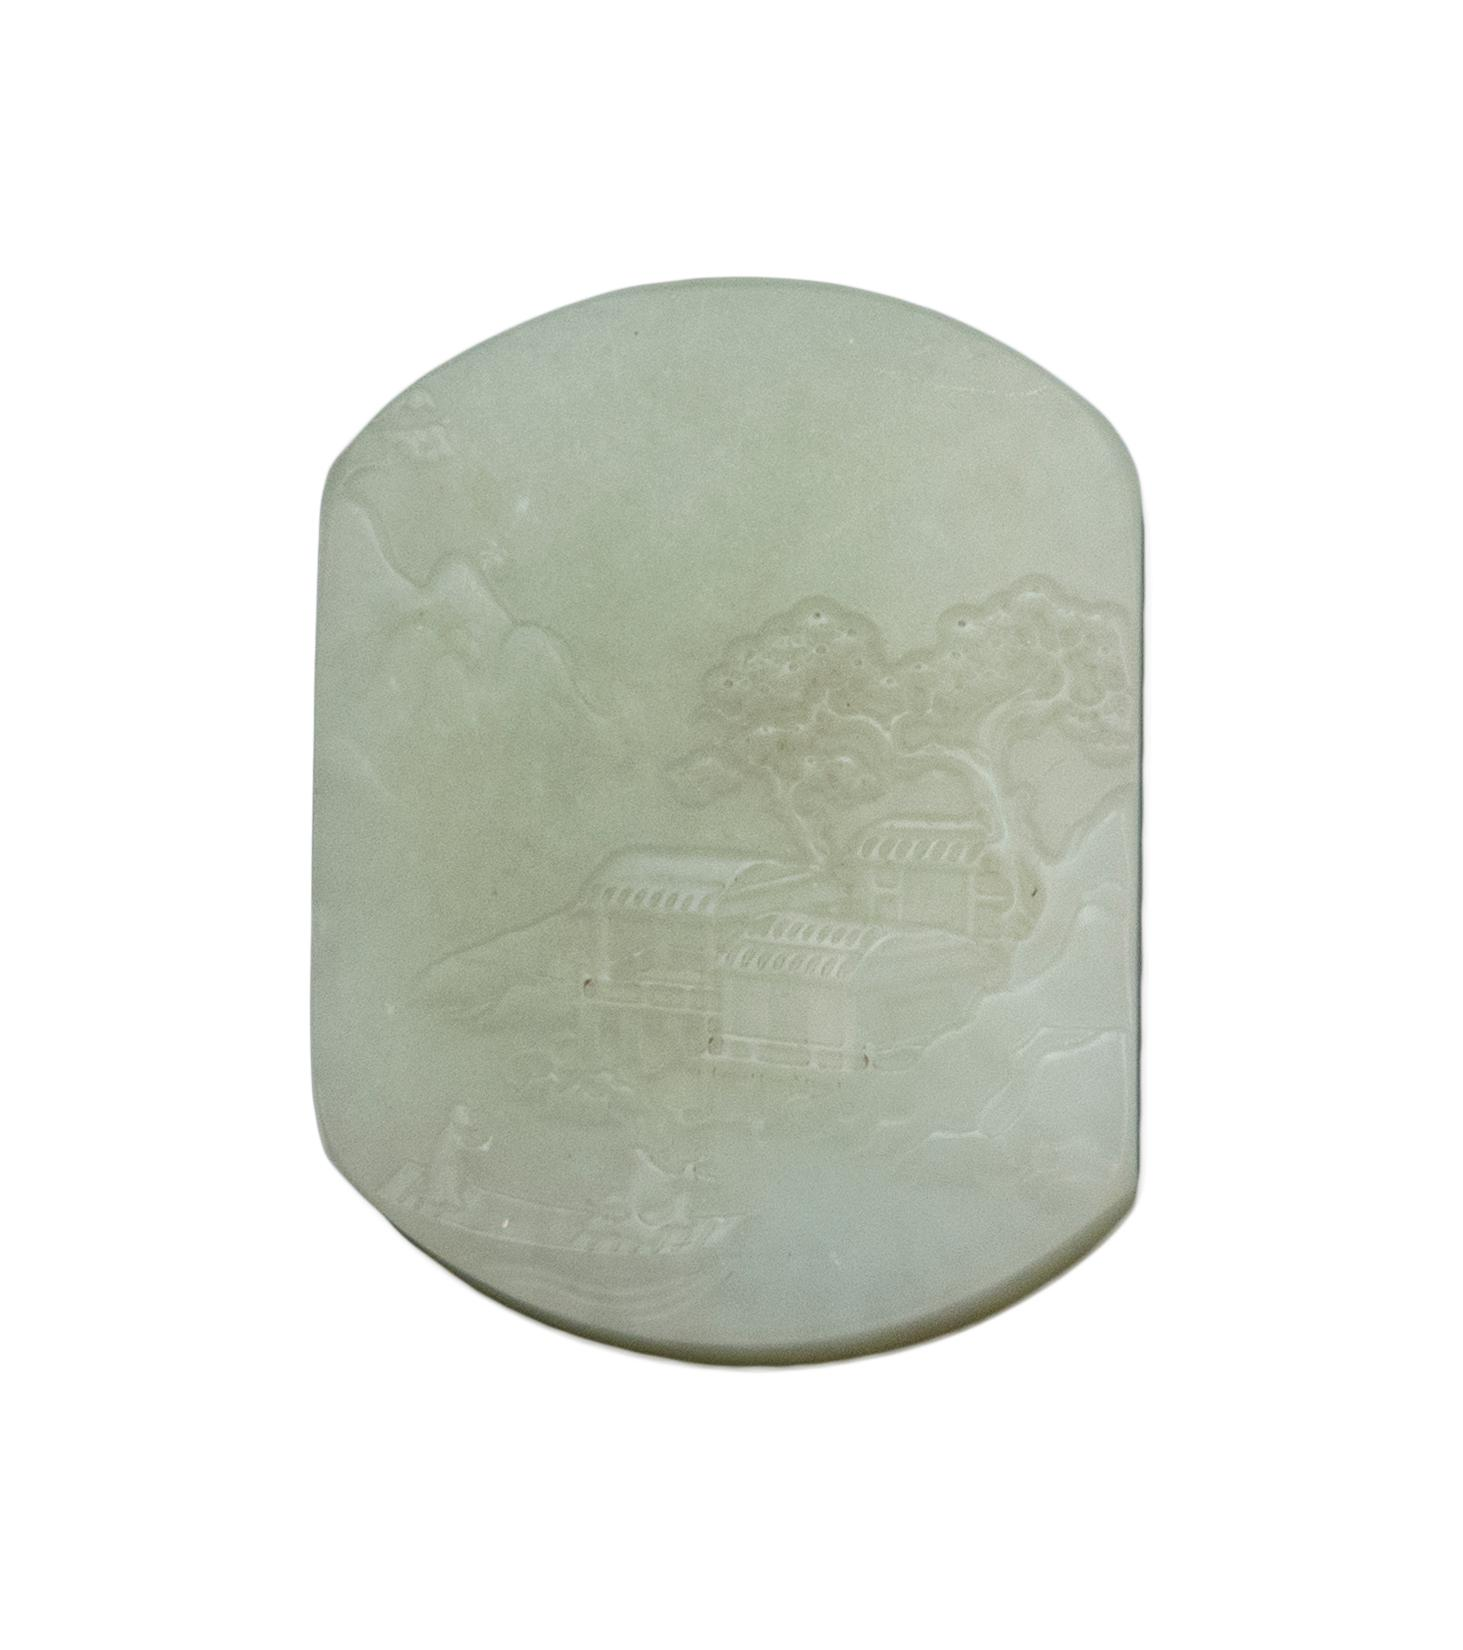 "CHINESE CELADON JADE PENDANT In modified rectangular form, depicting a river landscape featuring cottages and boatmen. Length 2.1""."